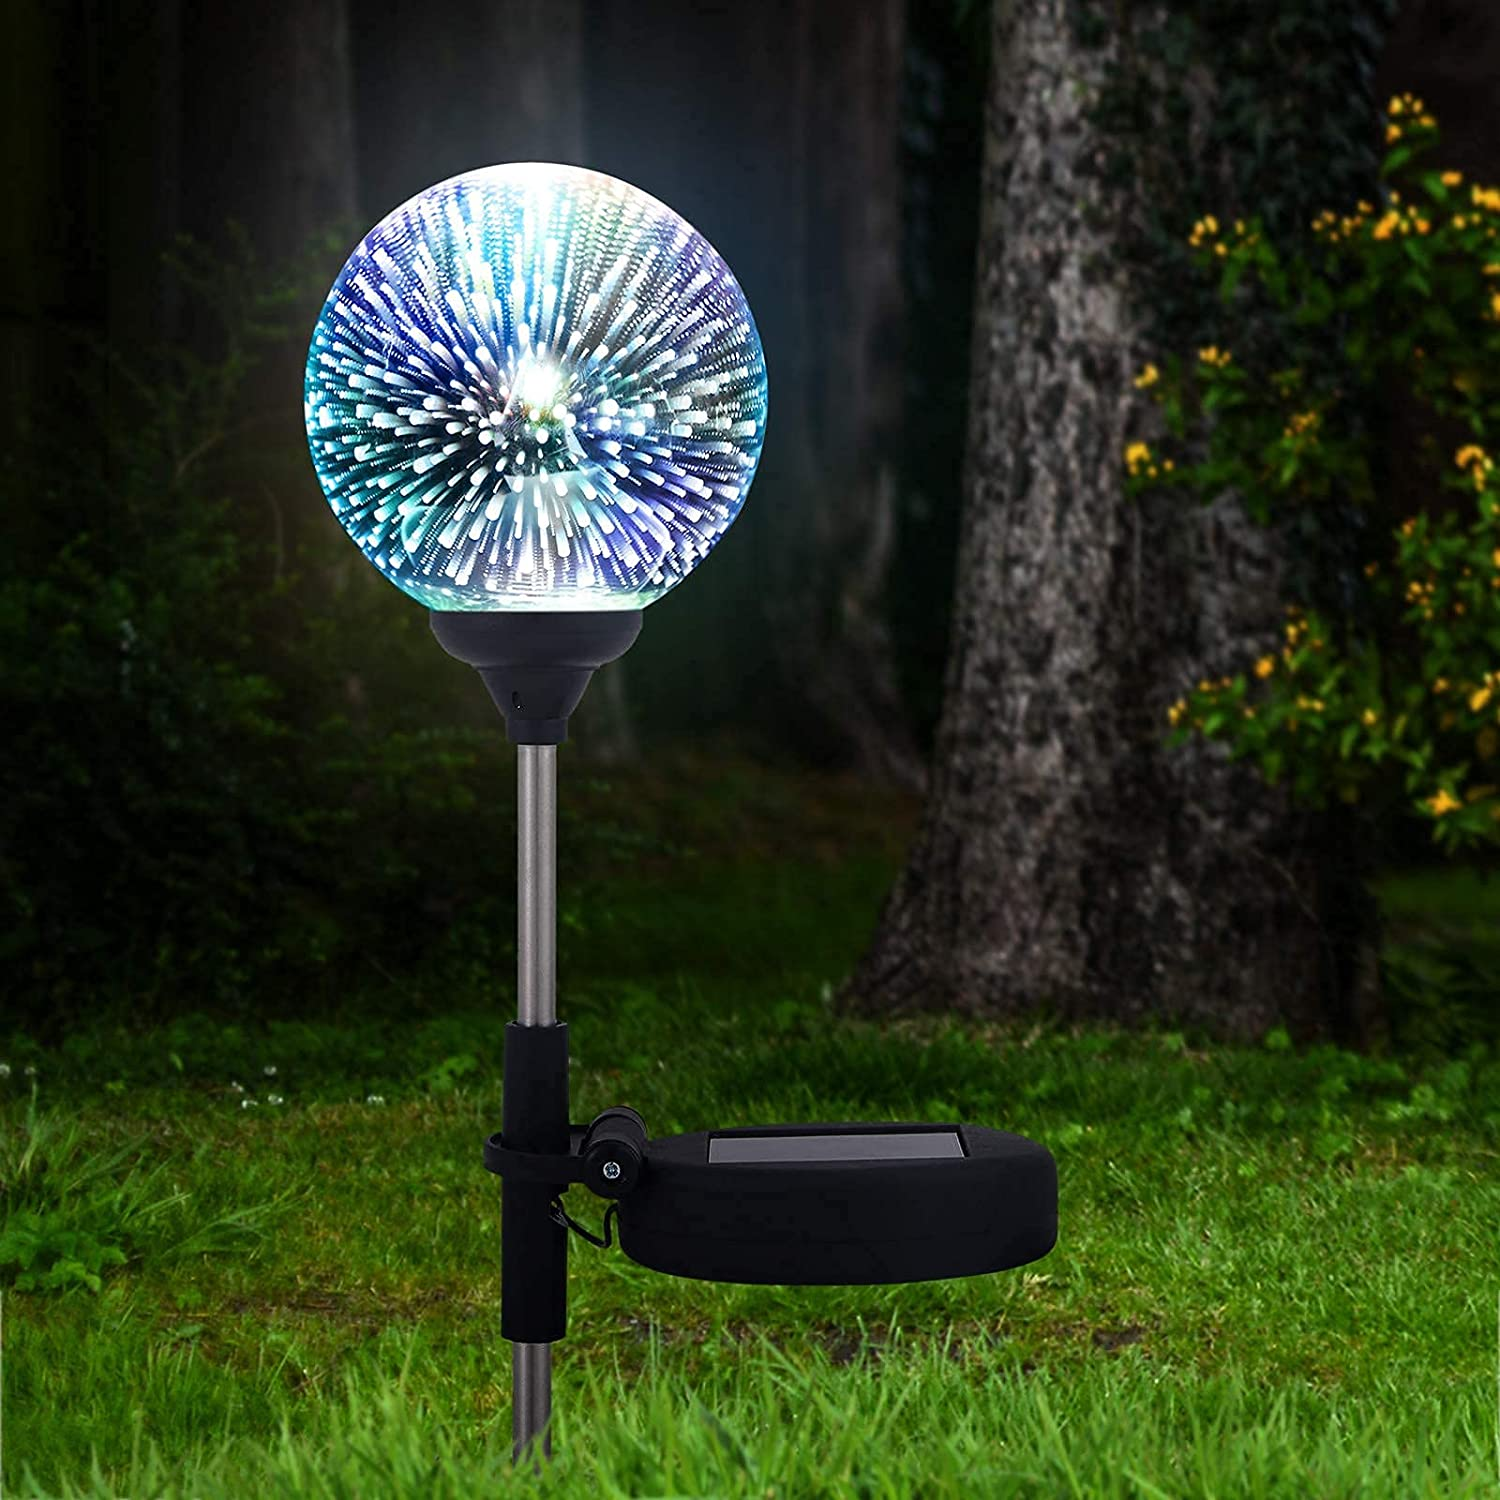 SODELIC Solar Garden Lights 3D Led Ball, Glass Globe Decorative Light, Waterproof Colorful Lamps for Spring Patio Yard Path (1PC)